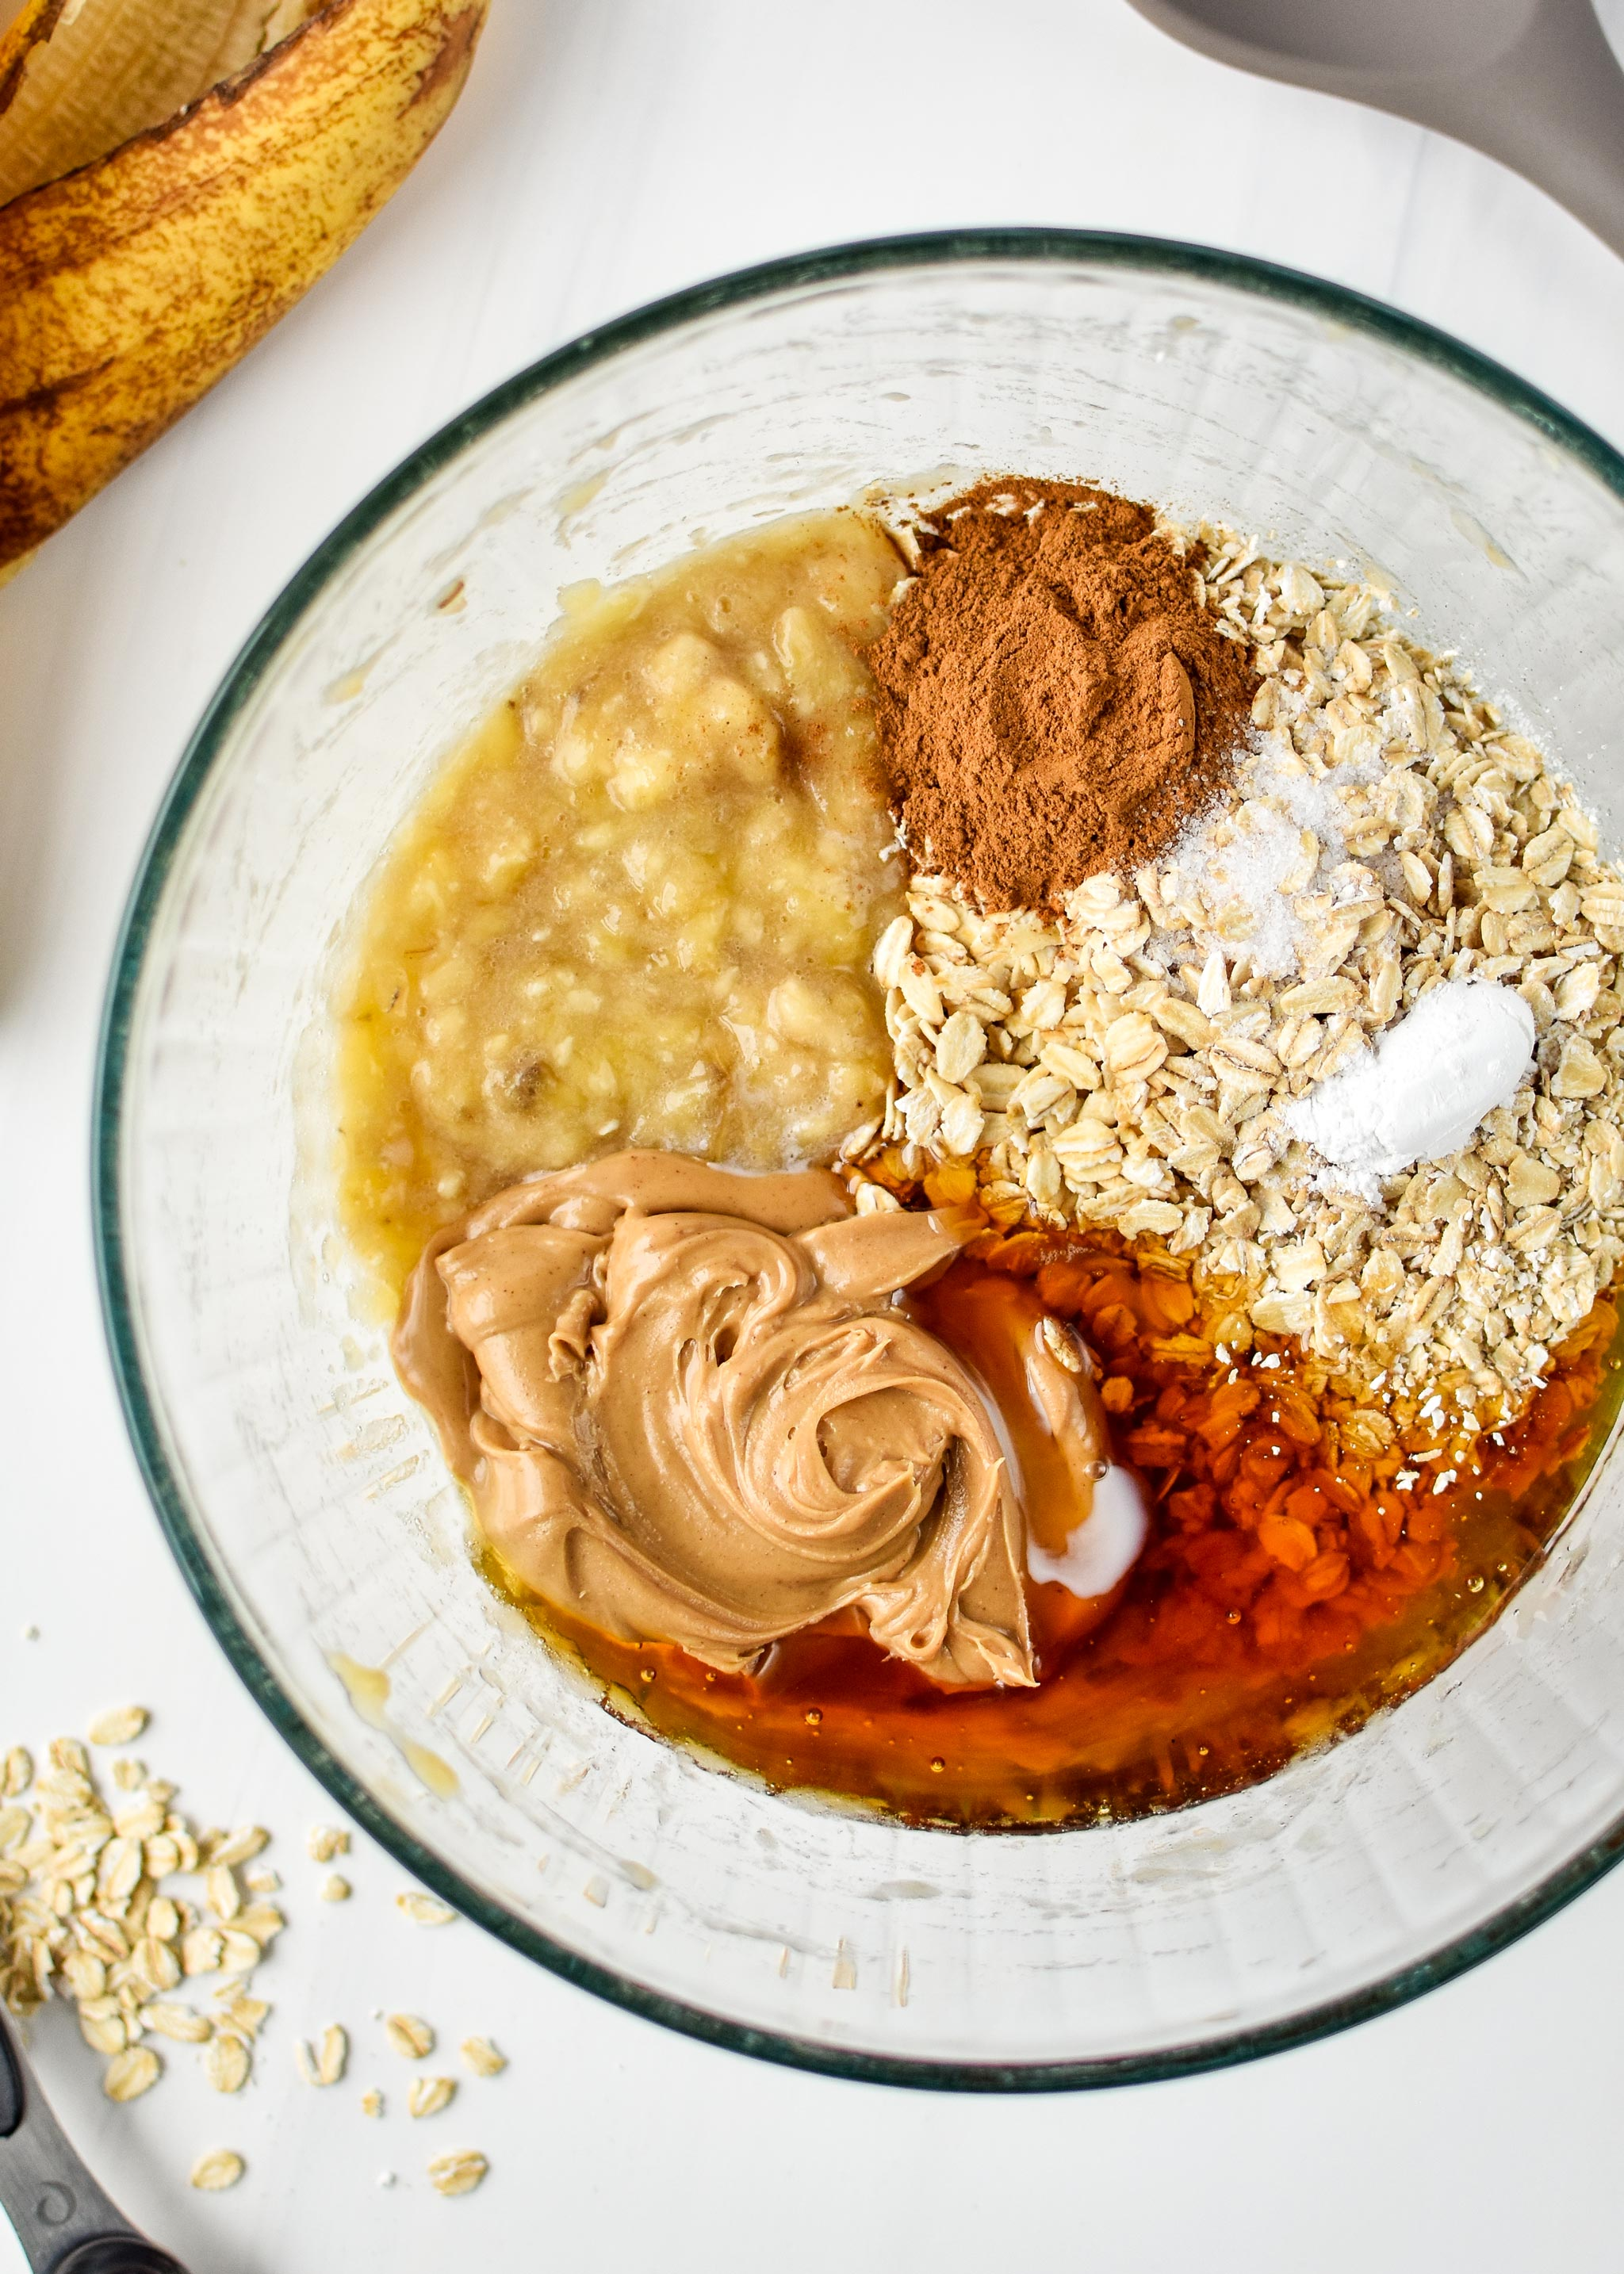 All the ingredients for the Banana Oatmeal Breakfast Bars